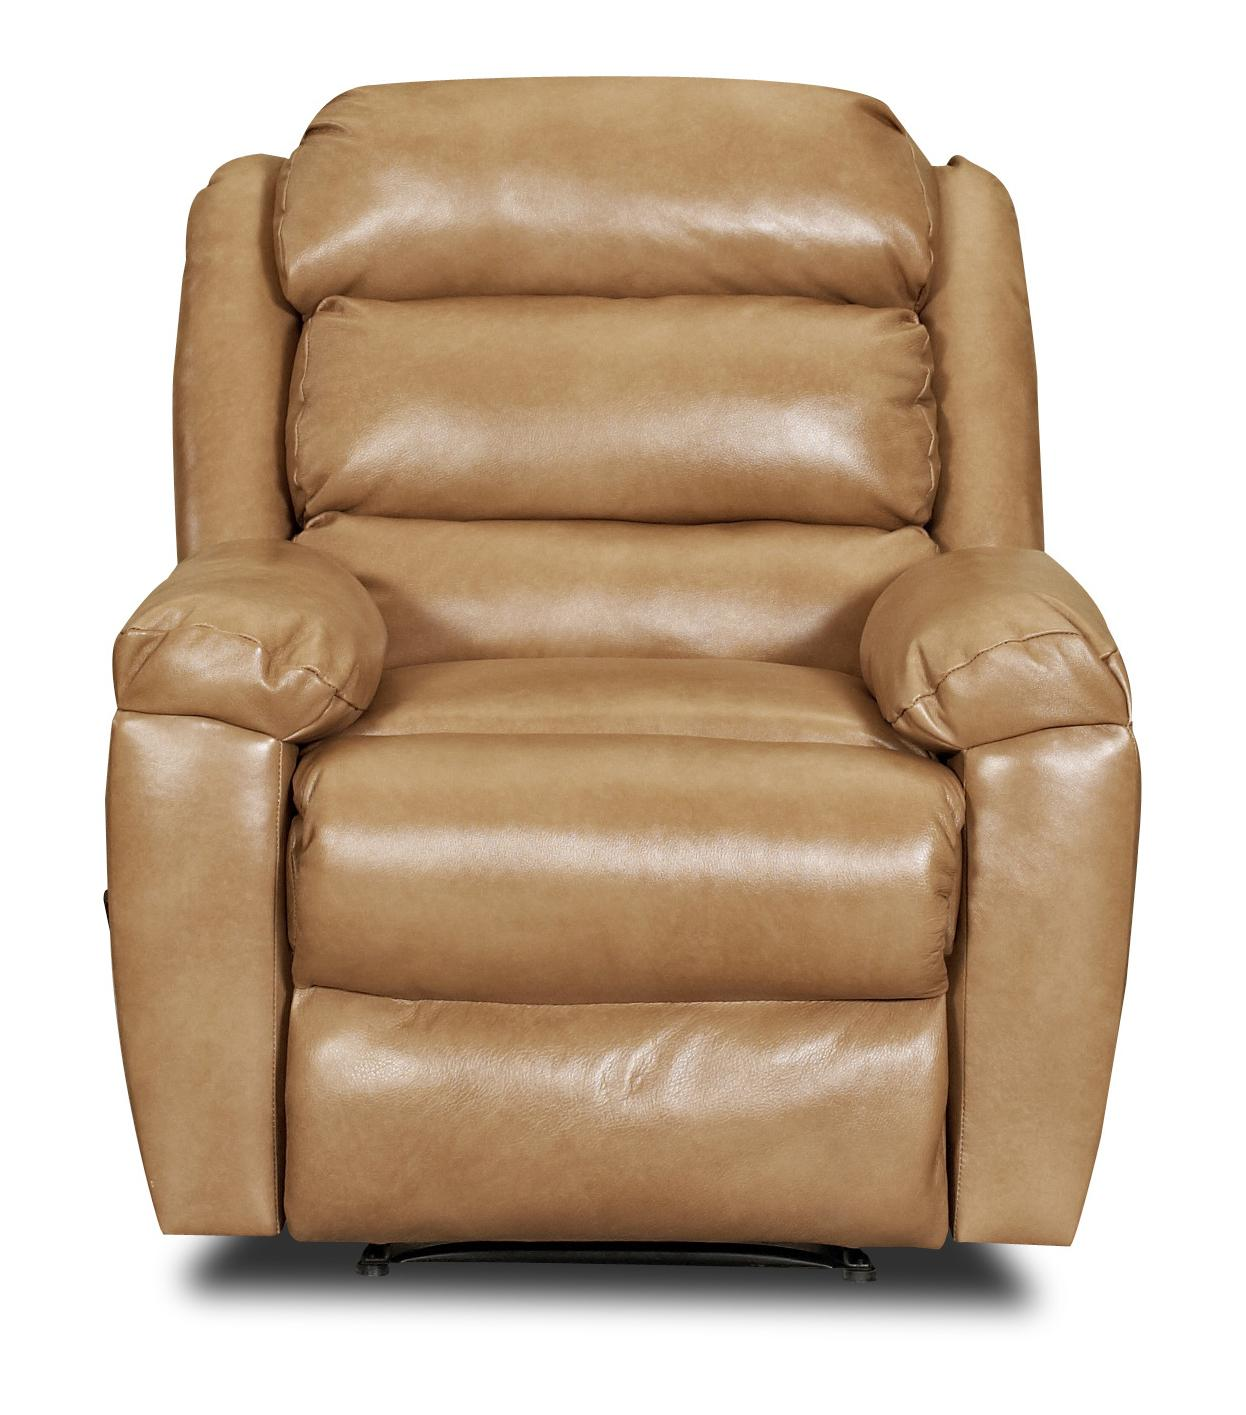 Klaussner Lanier Casual Power Recliner - Item Number: LV12503 PWRC